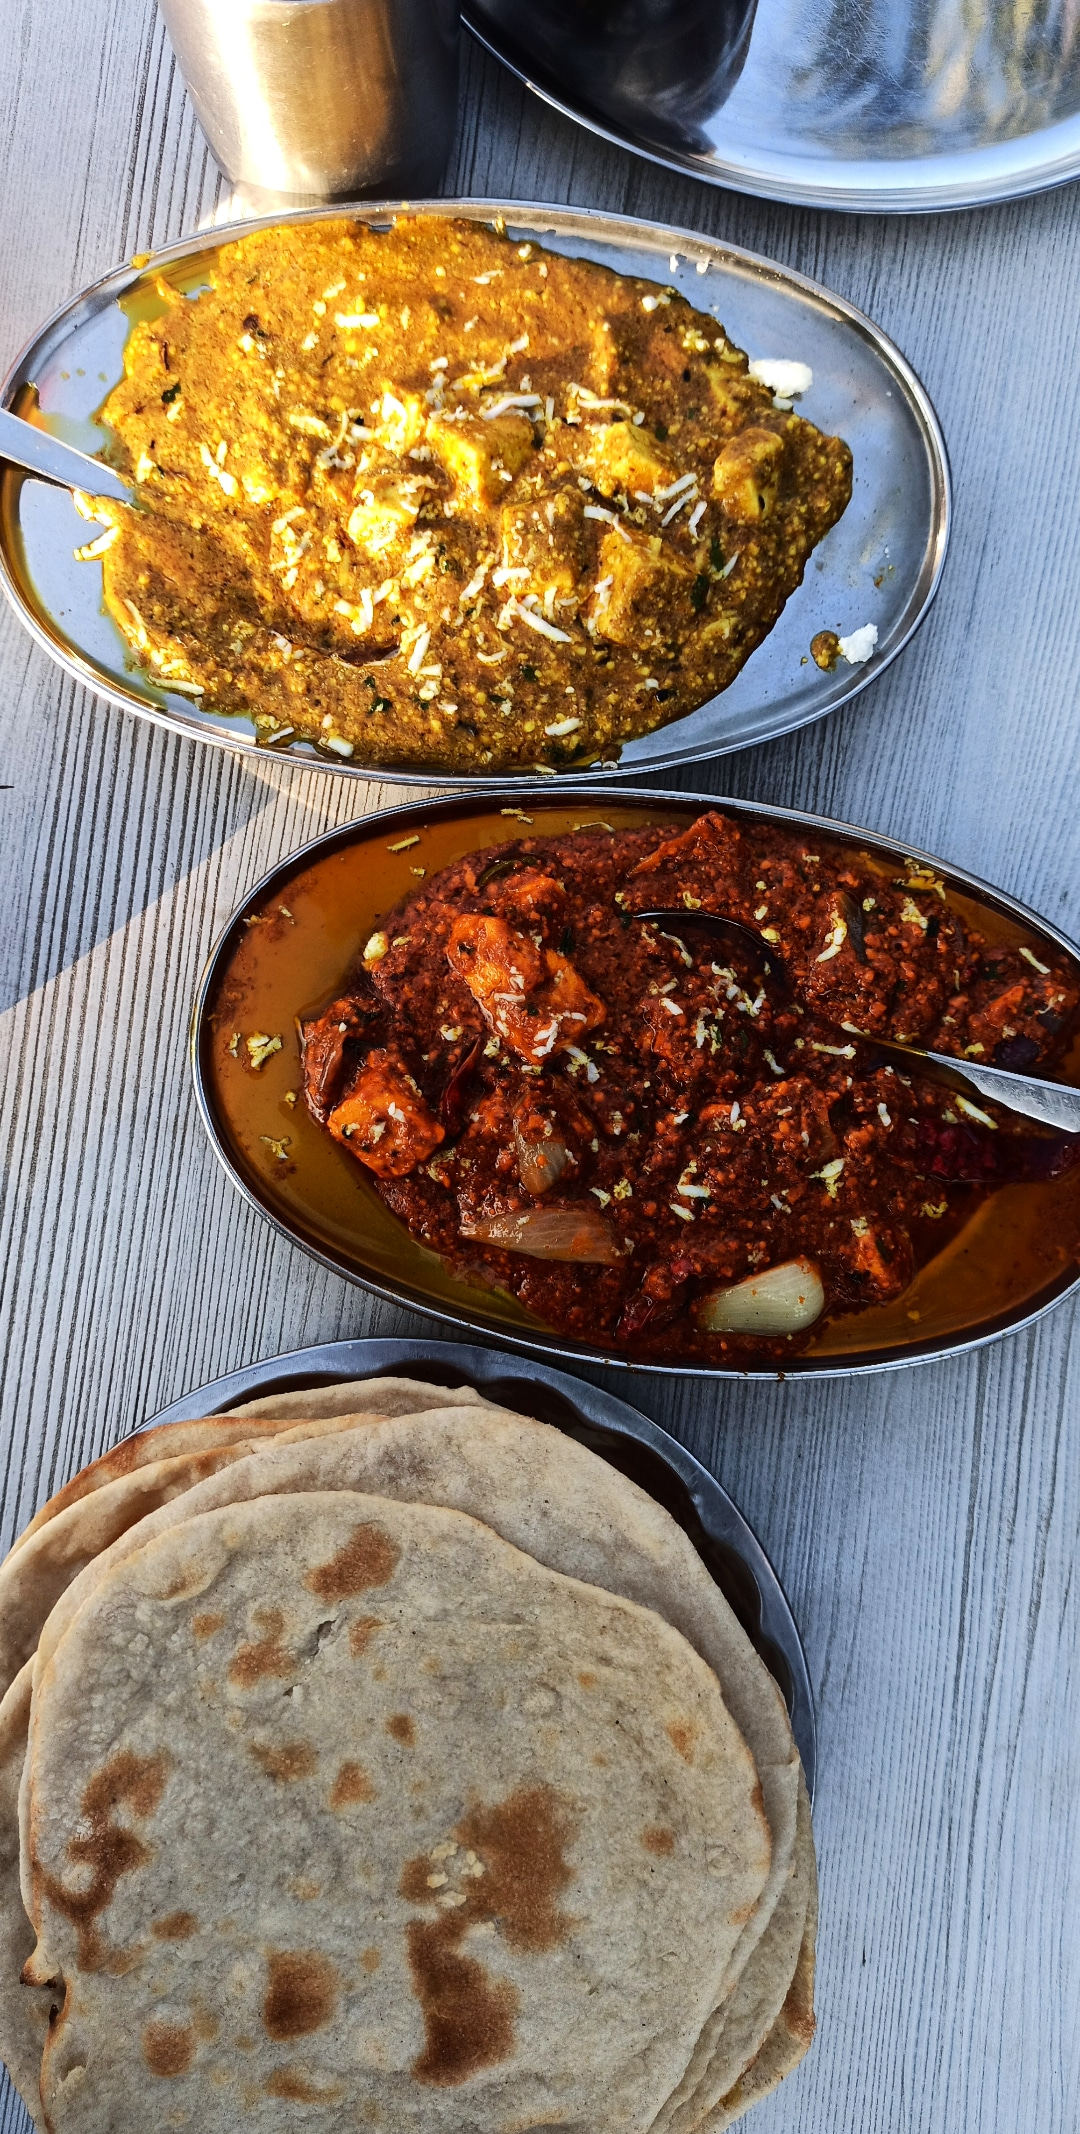 Desi Indian food